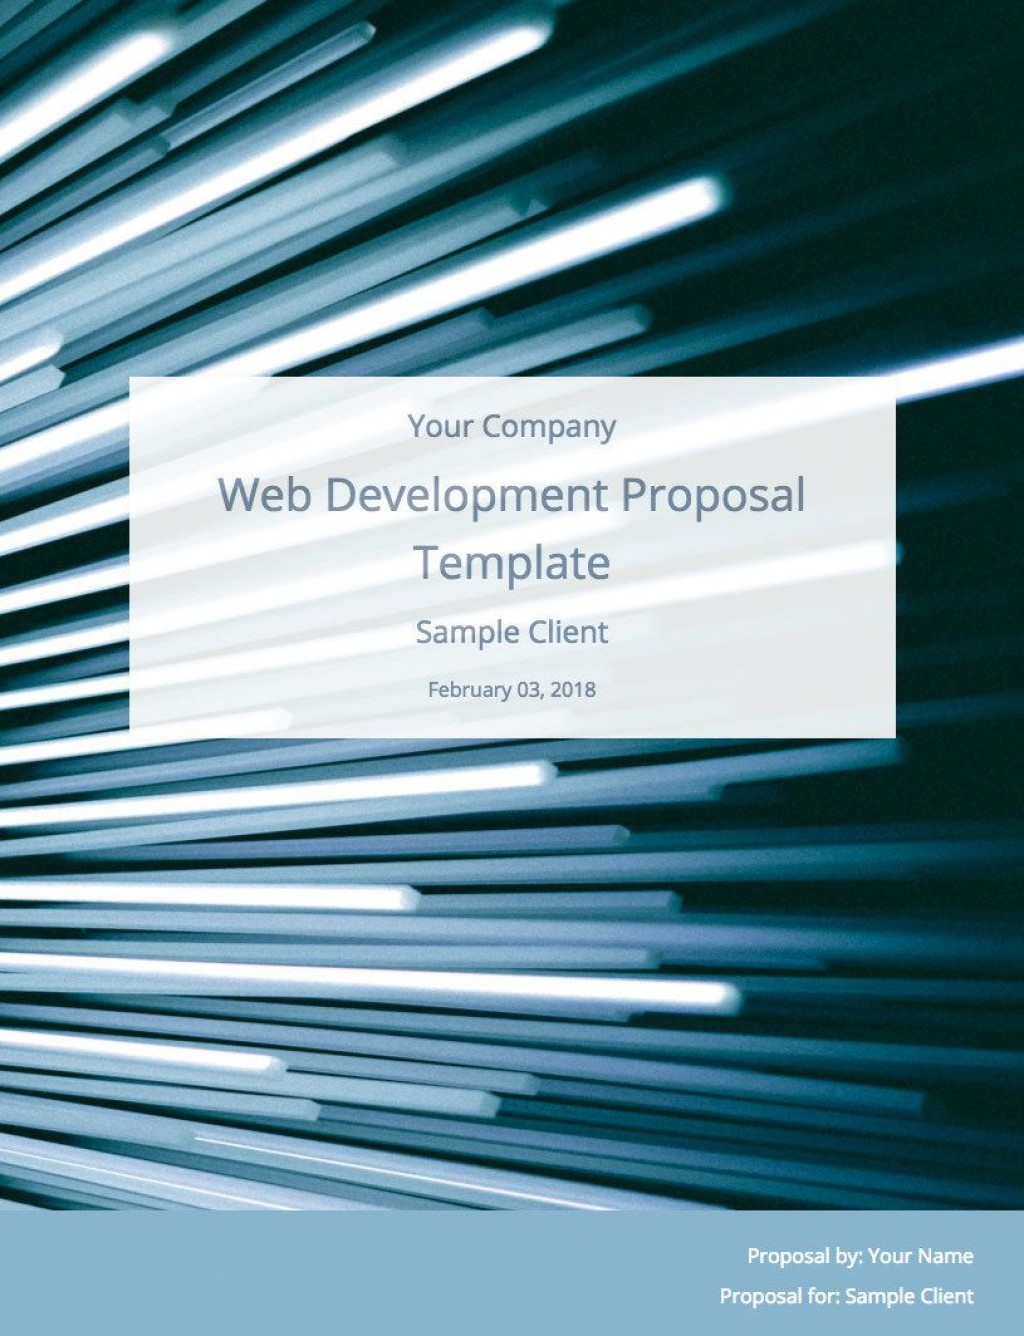 004 Top Website Development Proposal Template Word Picture  FreeLarge